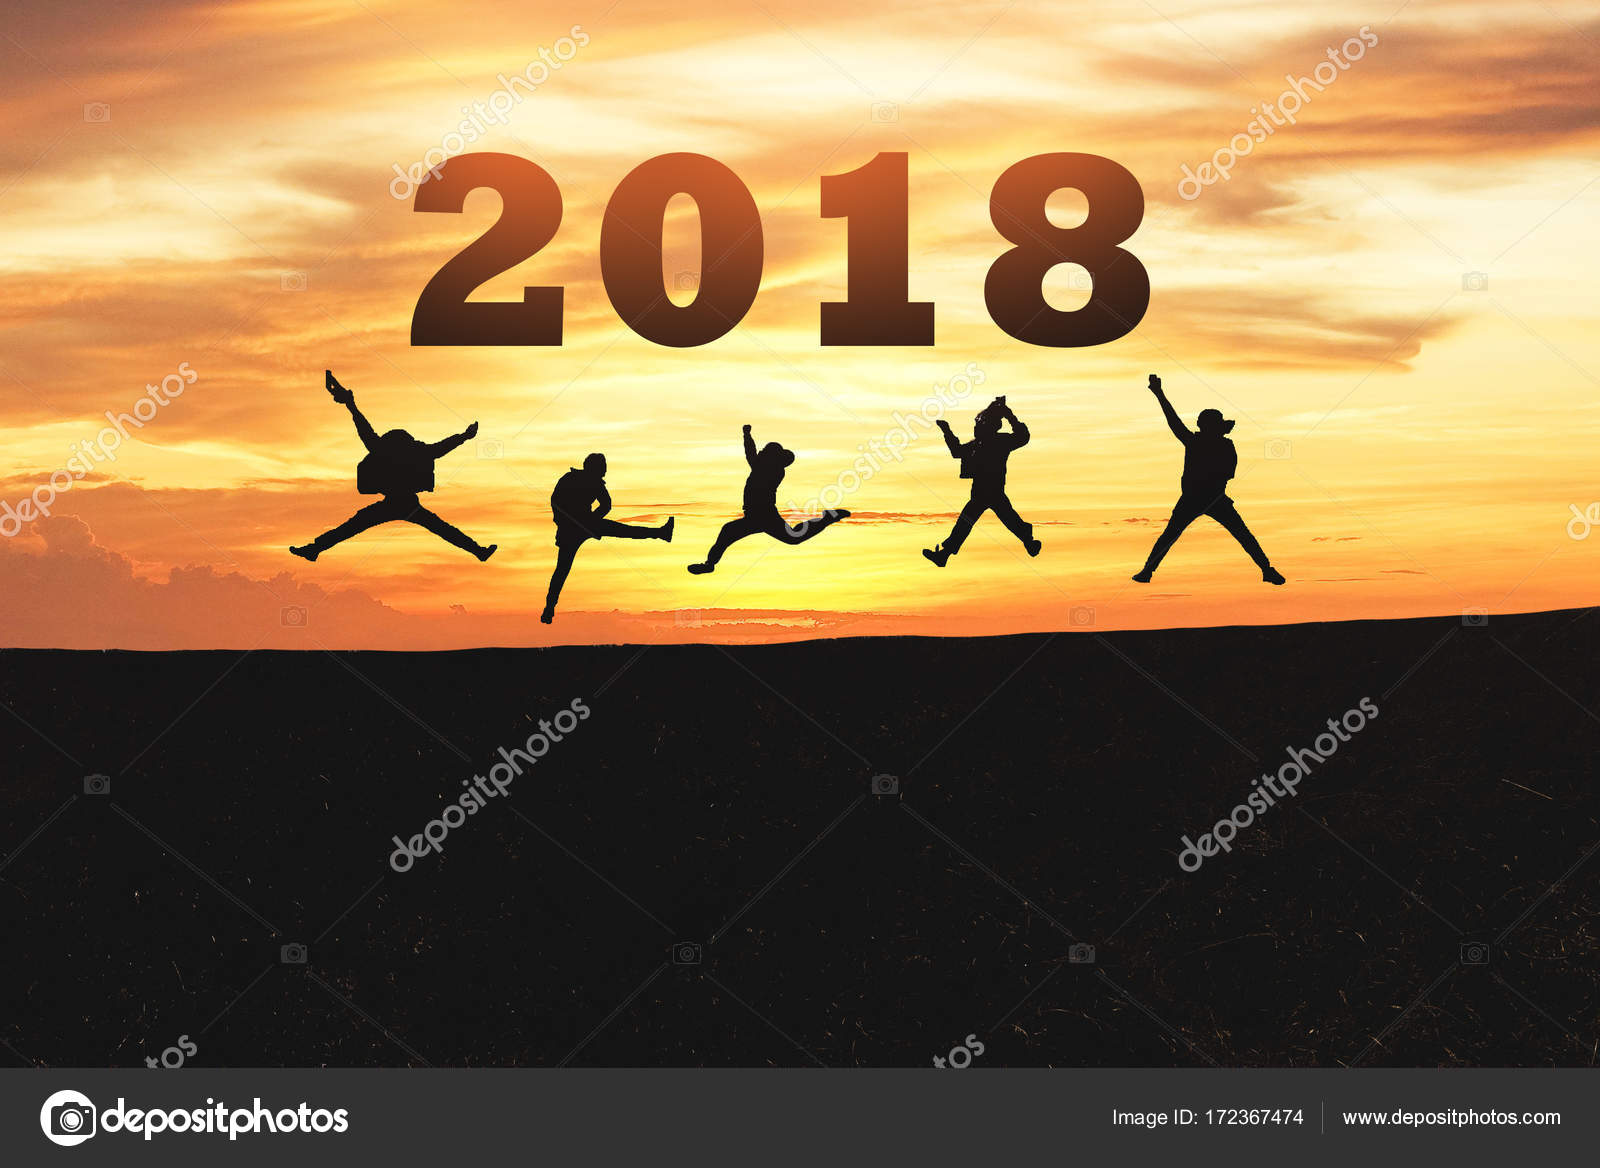 Happy New Year Card 2018 Silhouette Of Teenager Jumping On Mountain